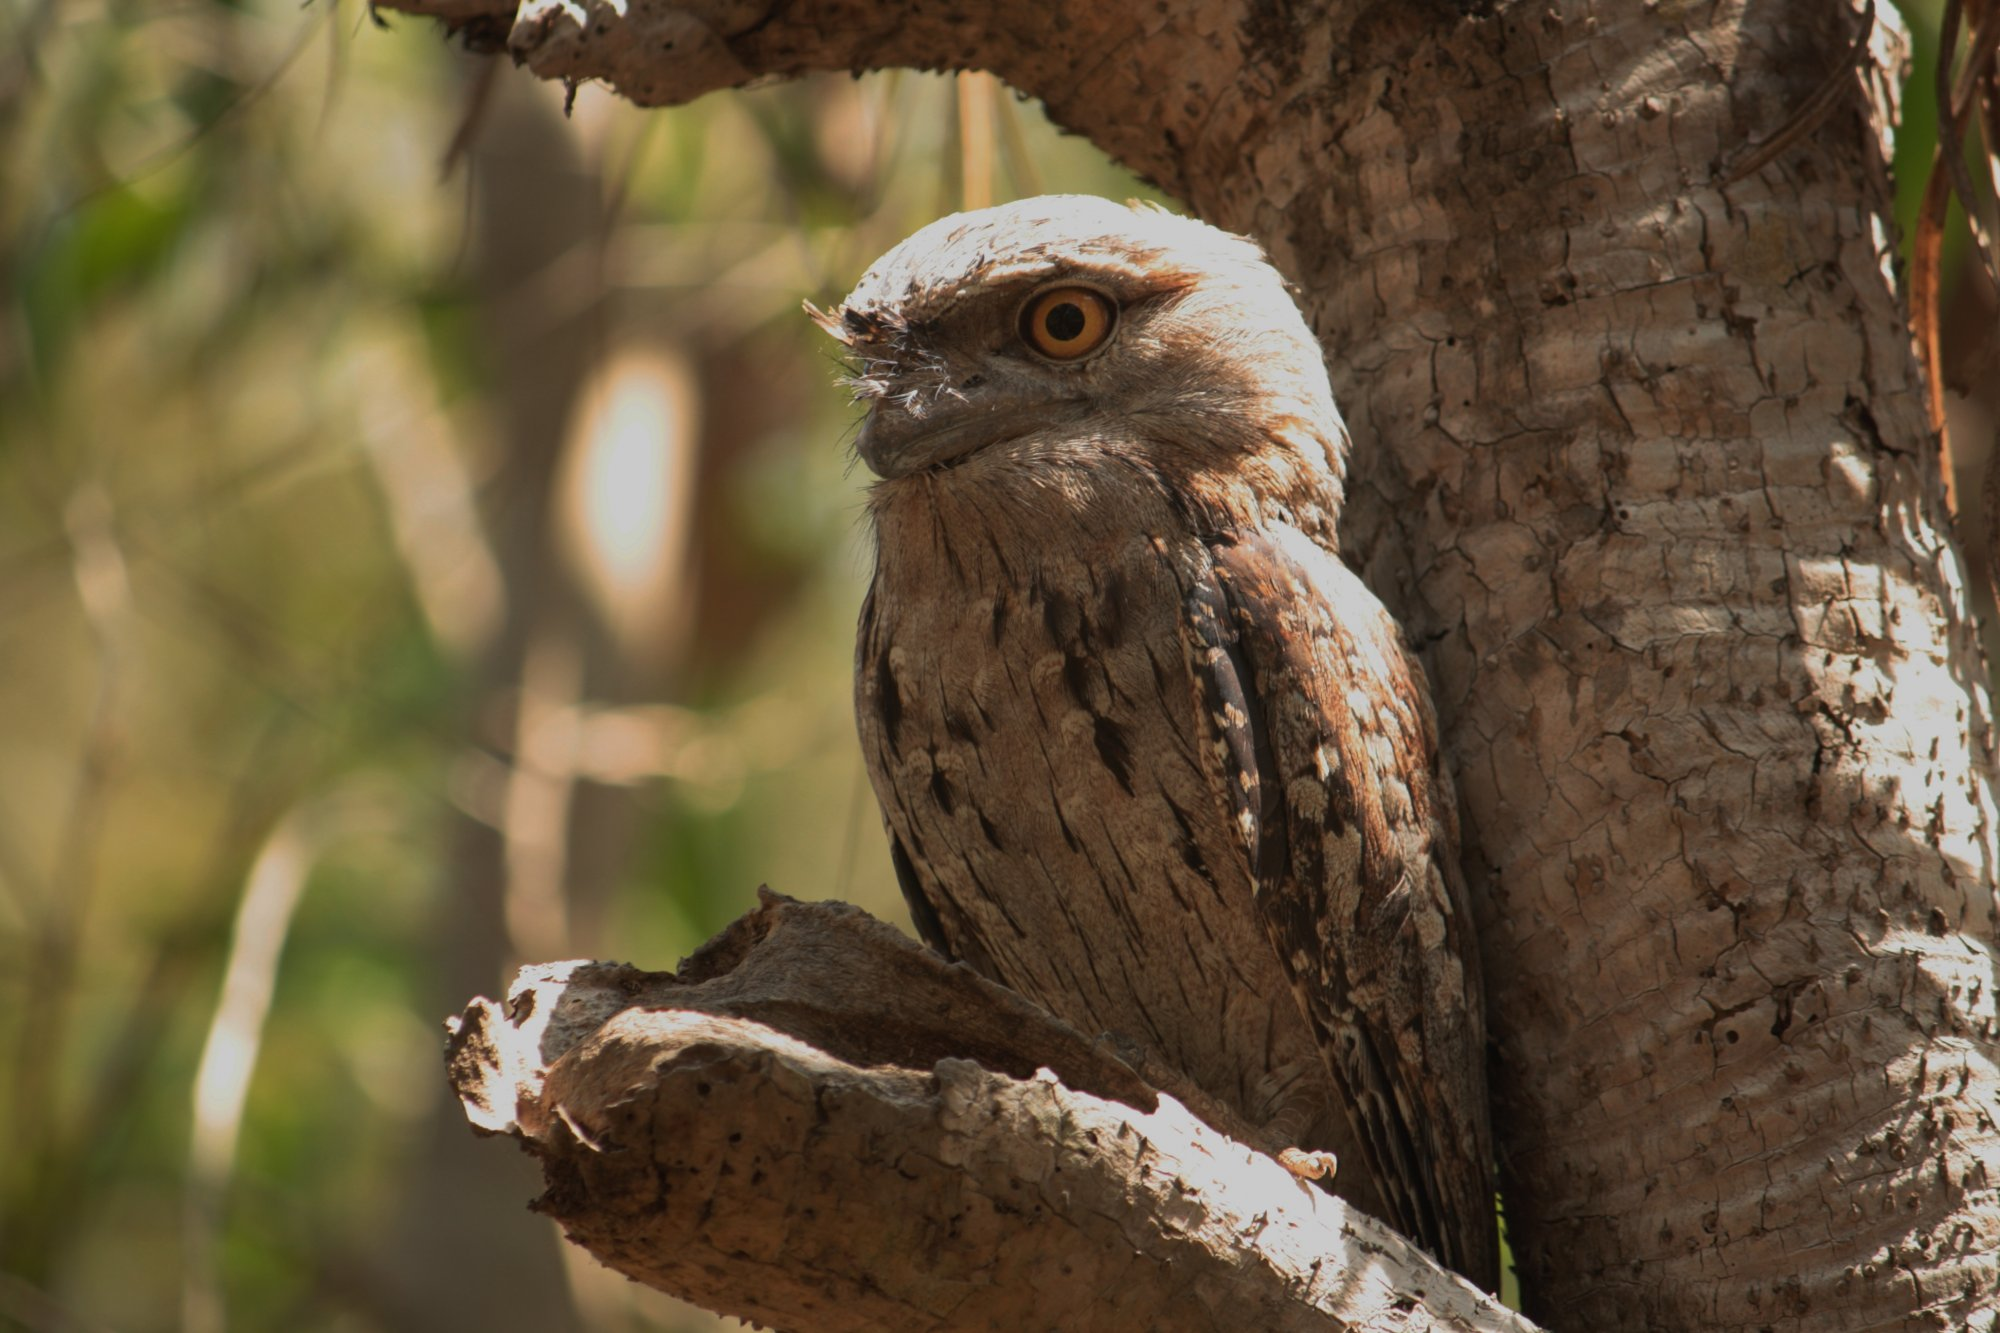 Tawny frogmouth owl found at Eat Point reserve